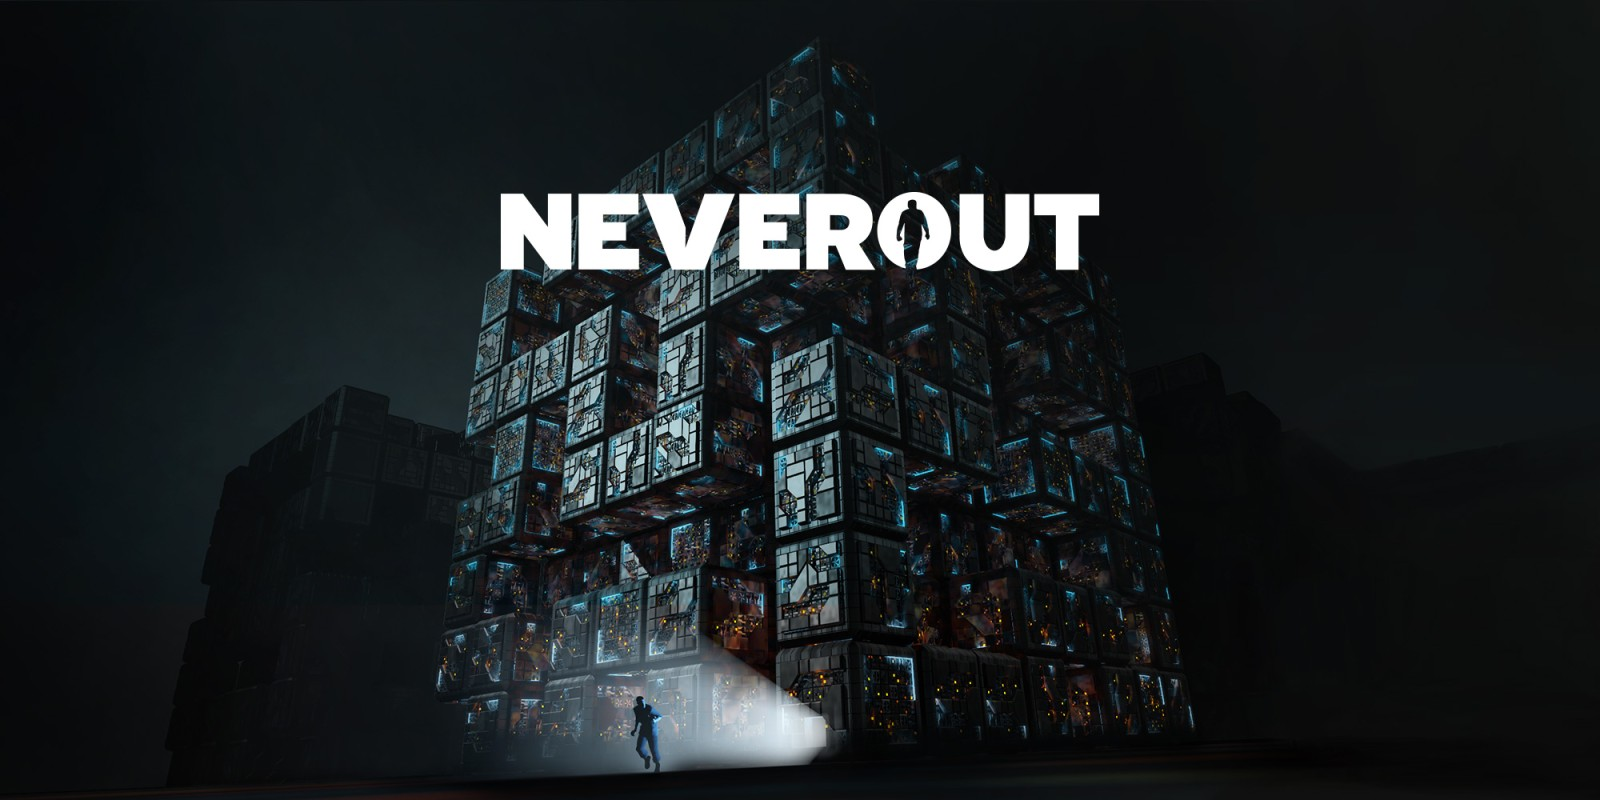 With its eerie atmosphere and interesting mechanics, Neverout had potential, but it doesn't do enough to deliver. If you happen to be in the market for a good first-person puzzler, you'll probably want to steer clear.